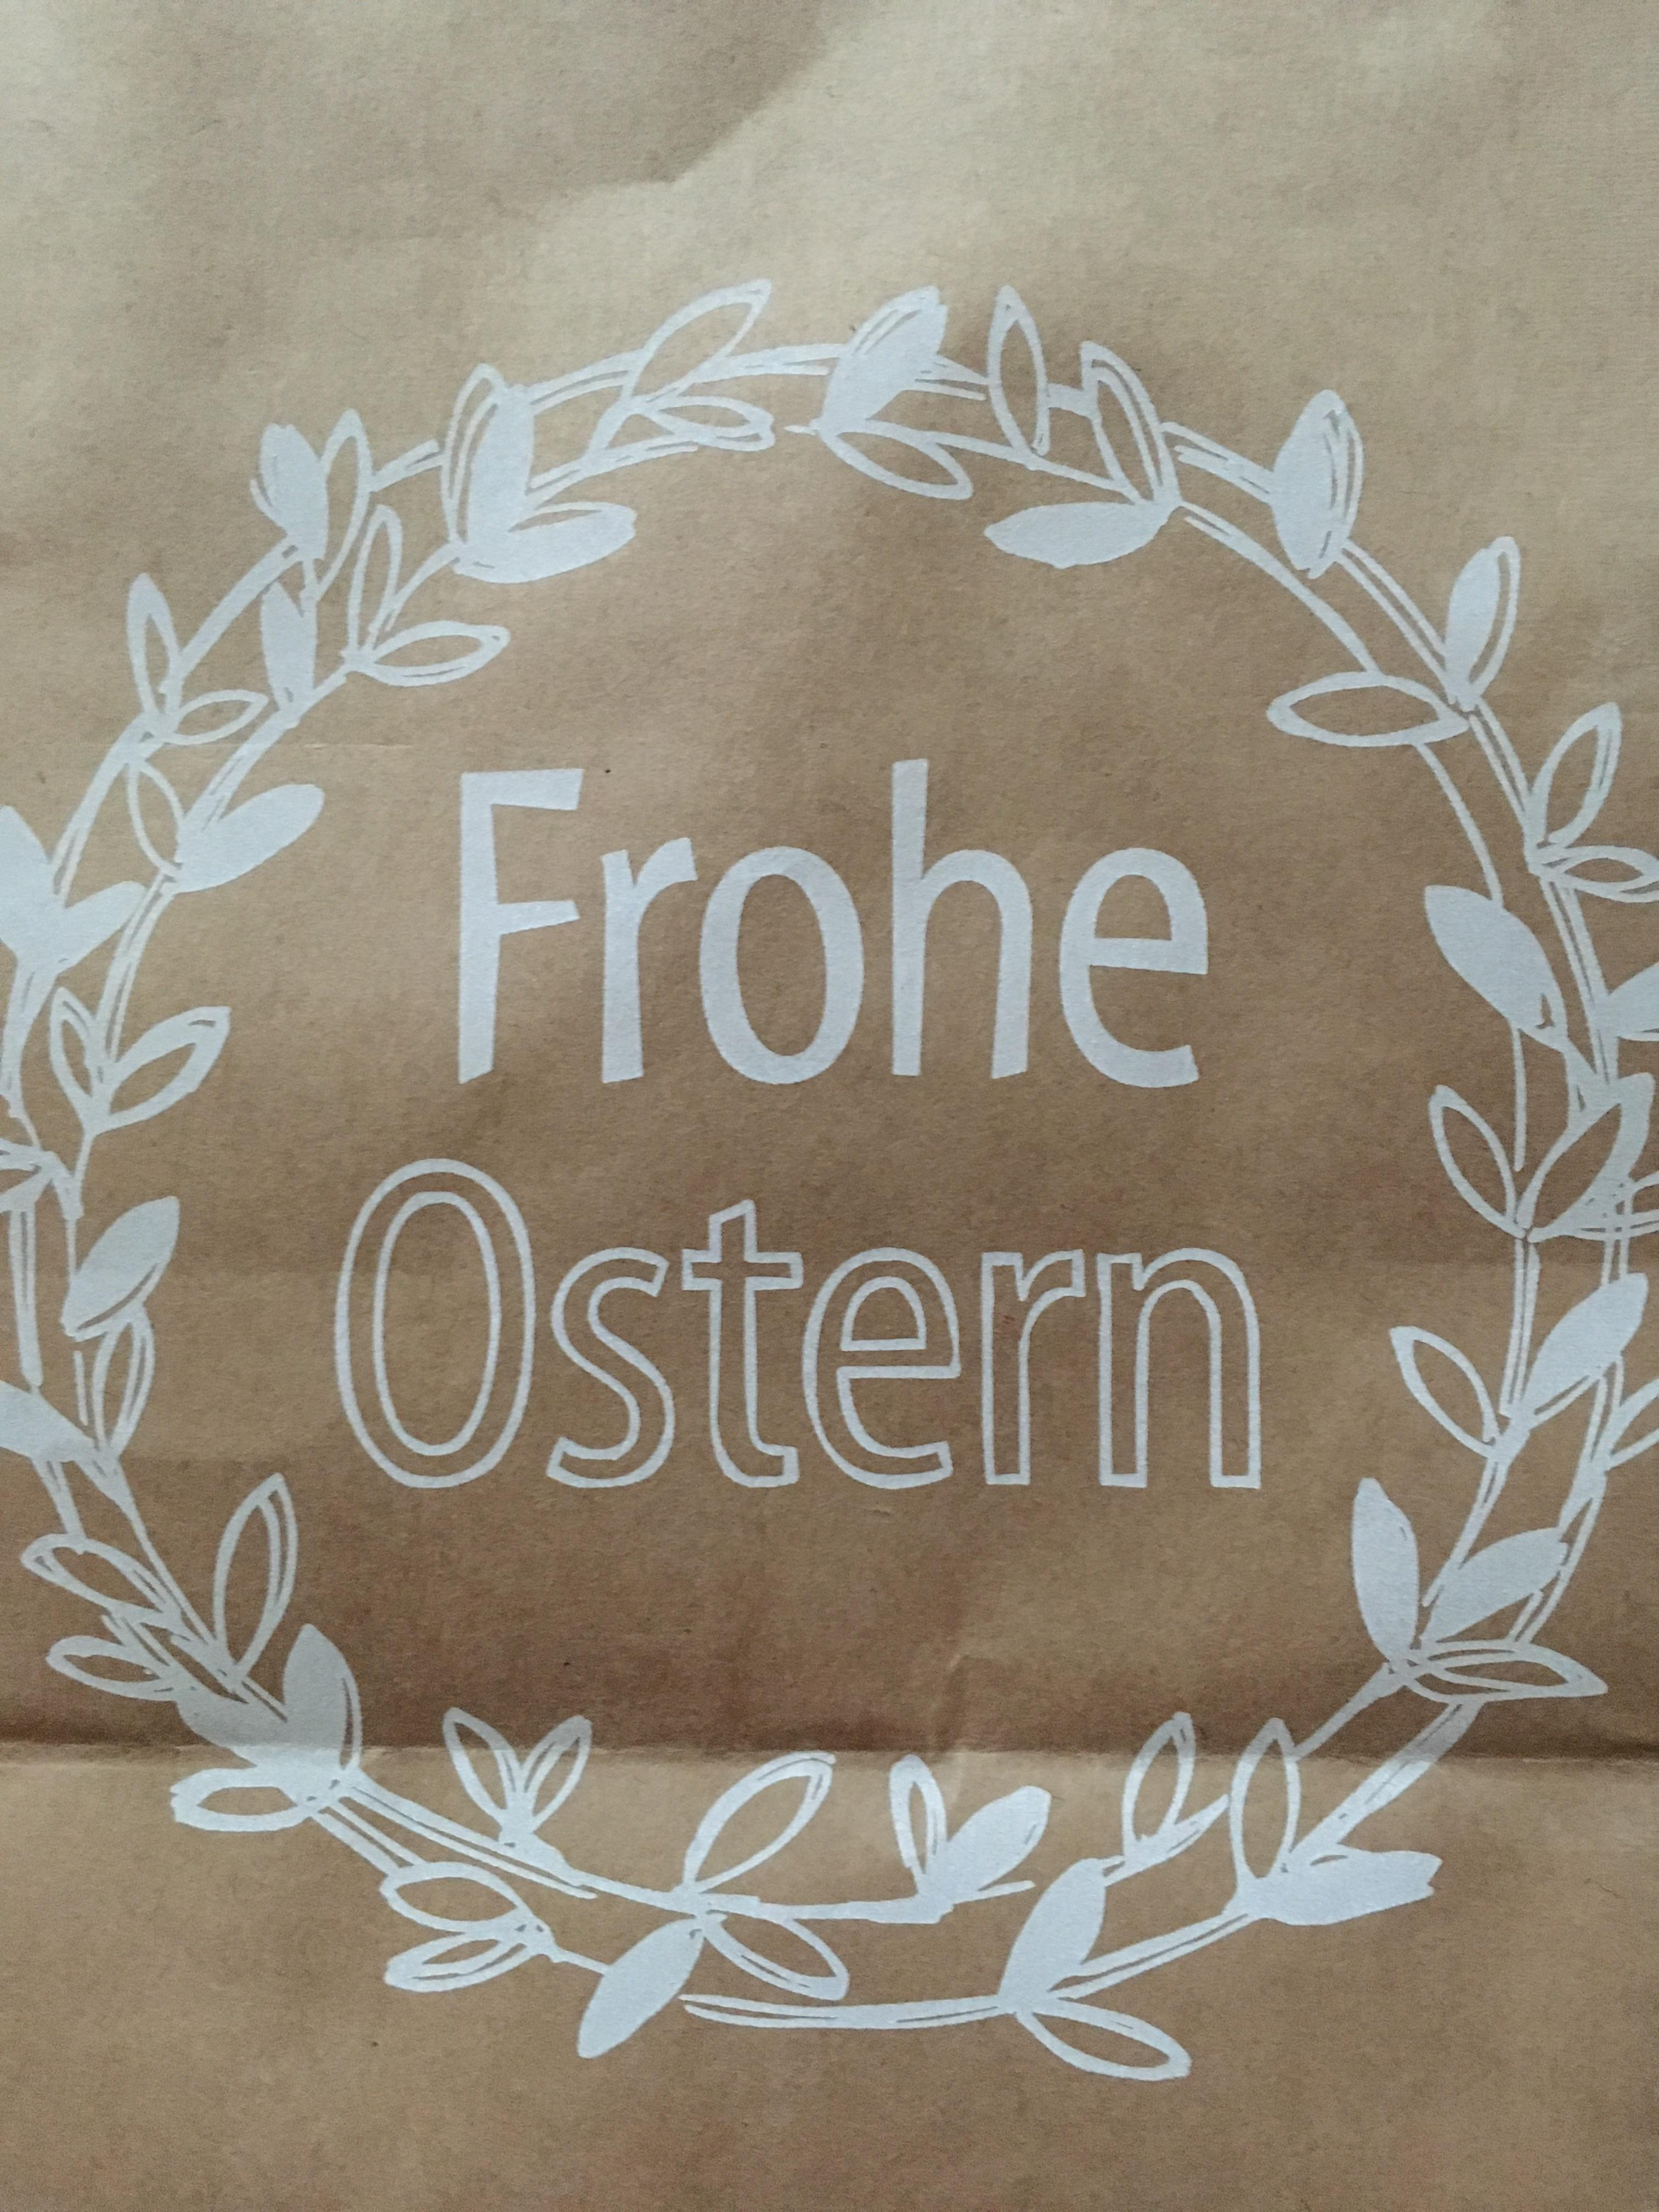 #ostern #handlettering frohe Ostern euch allen !!